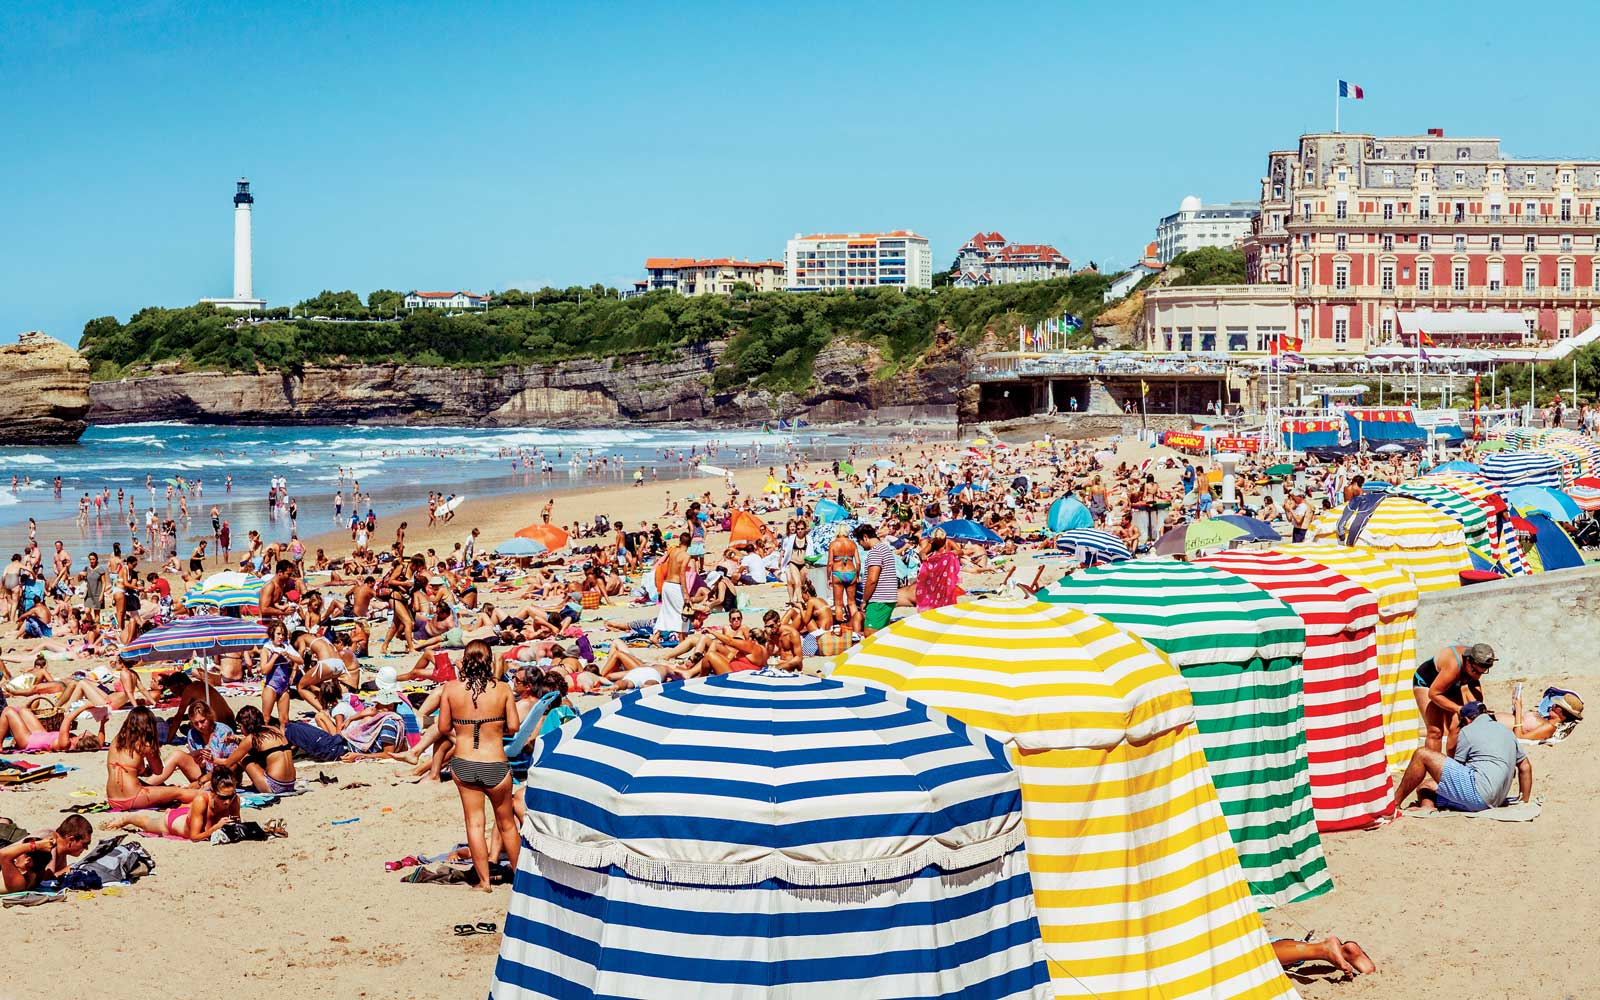 The Grand Plage in Biarritz, France